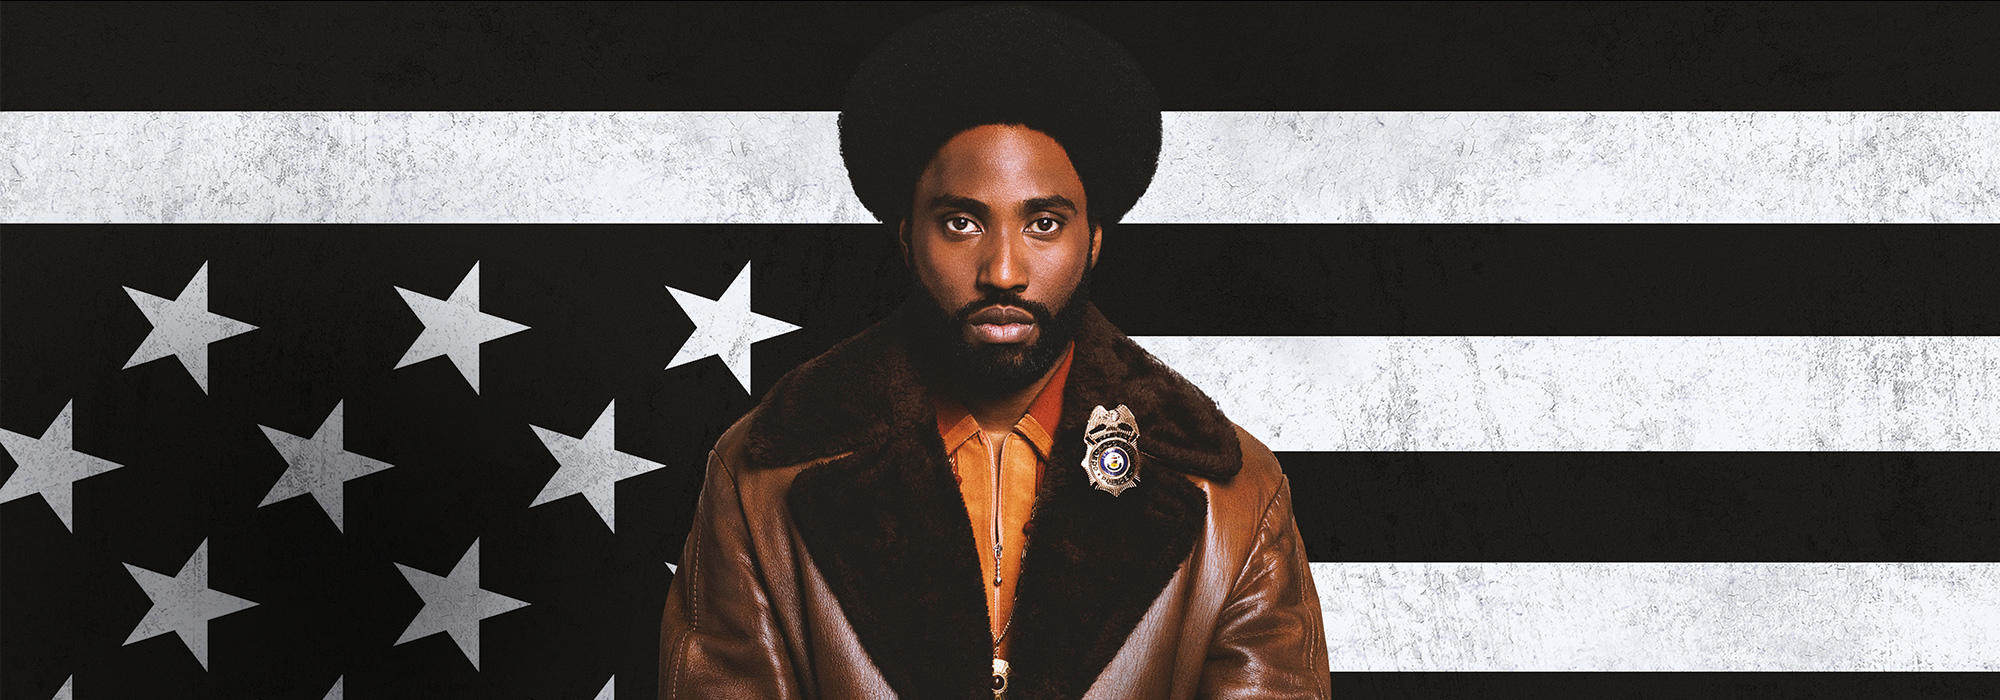 Blackkklansman HBO Movie